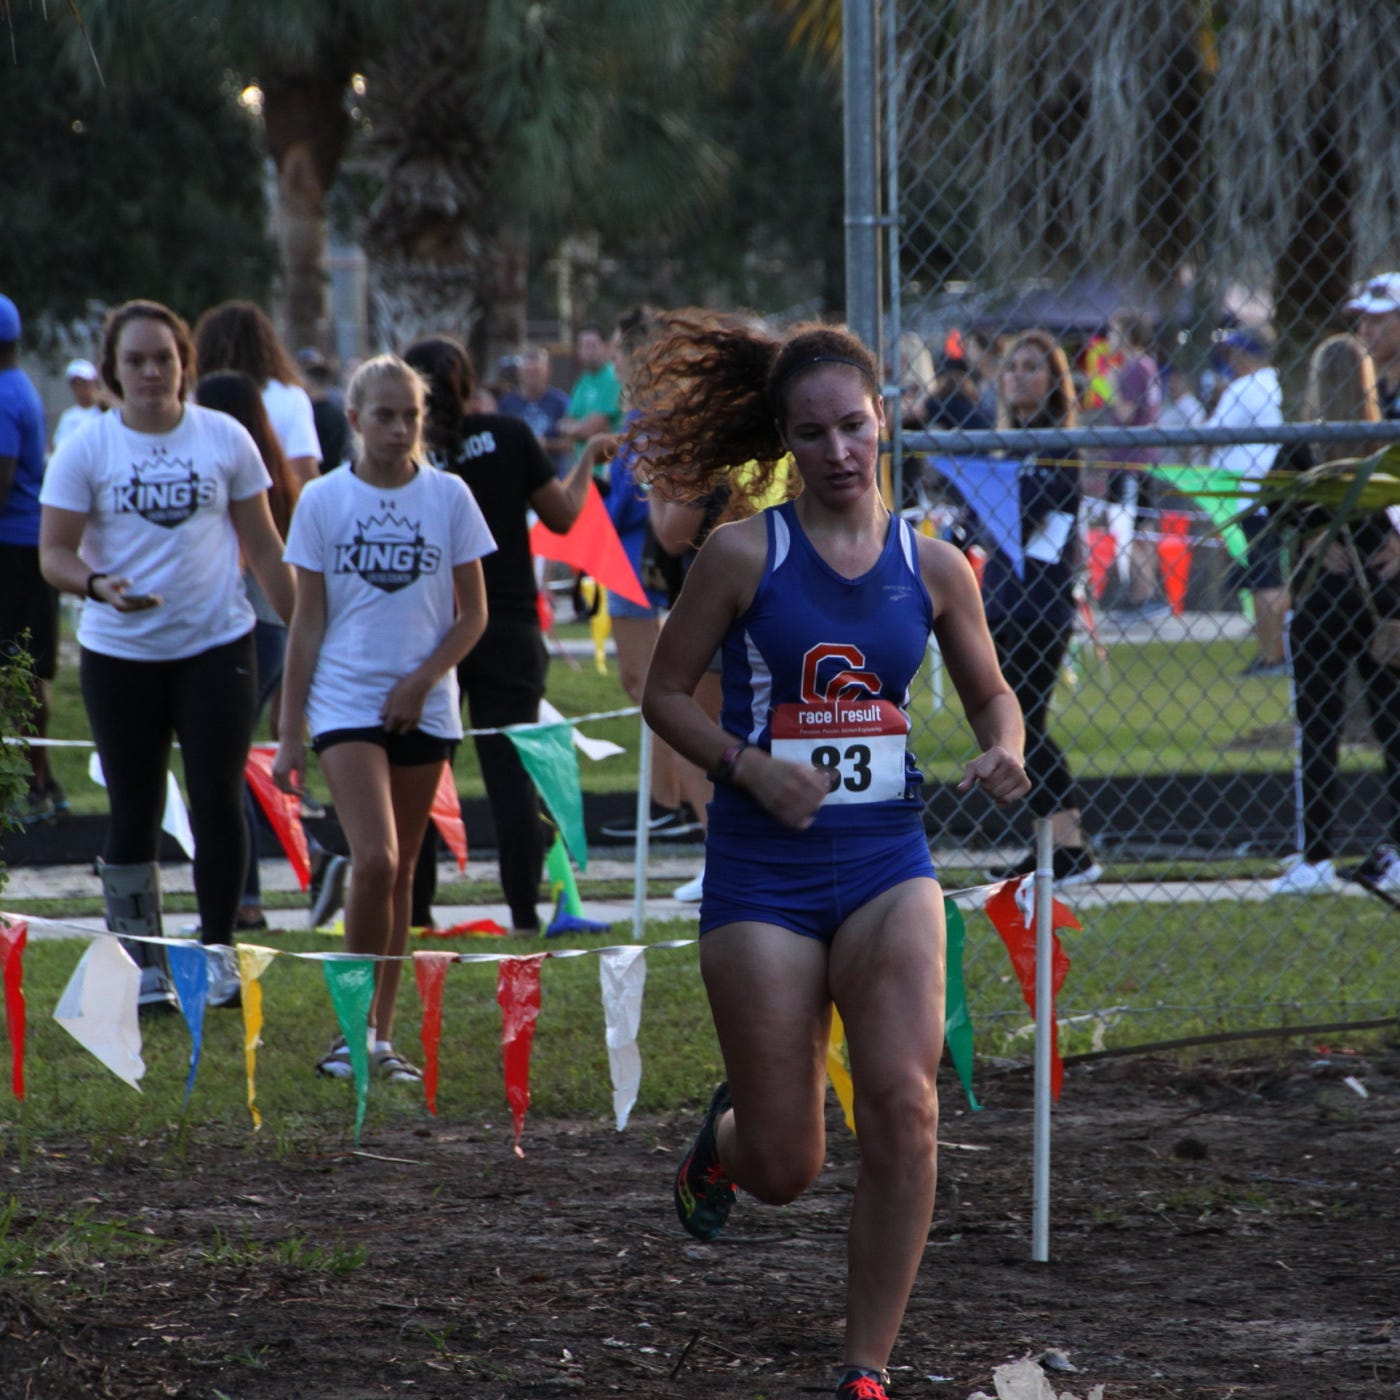 Cape Coral's Cheyenne Young paces field at Lely Invitational cross country meet